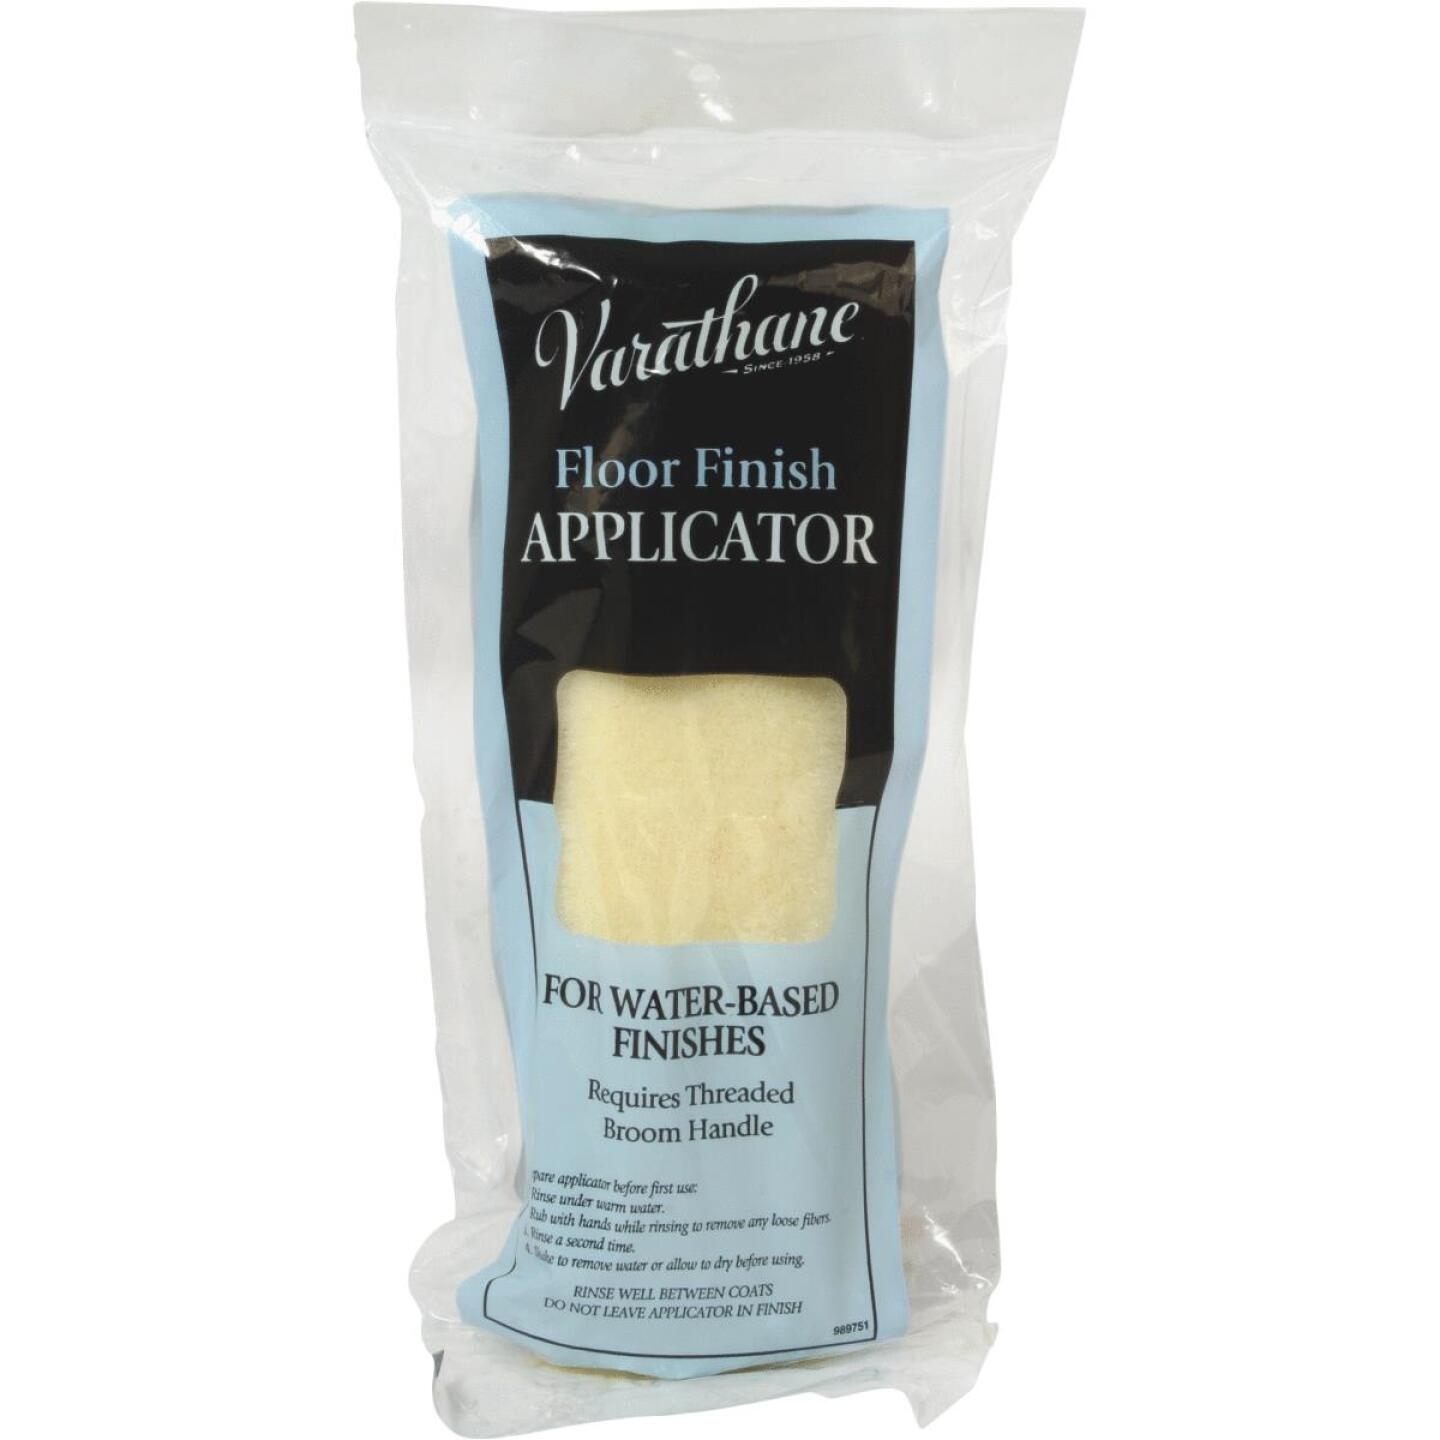 Varathane 10 In. Synthetic Applicator for Water-Based Floor Finishes Image 1